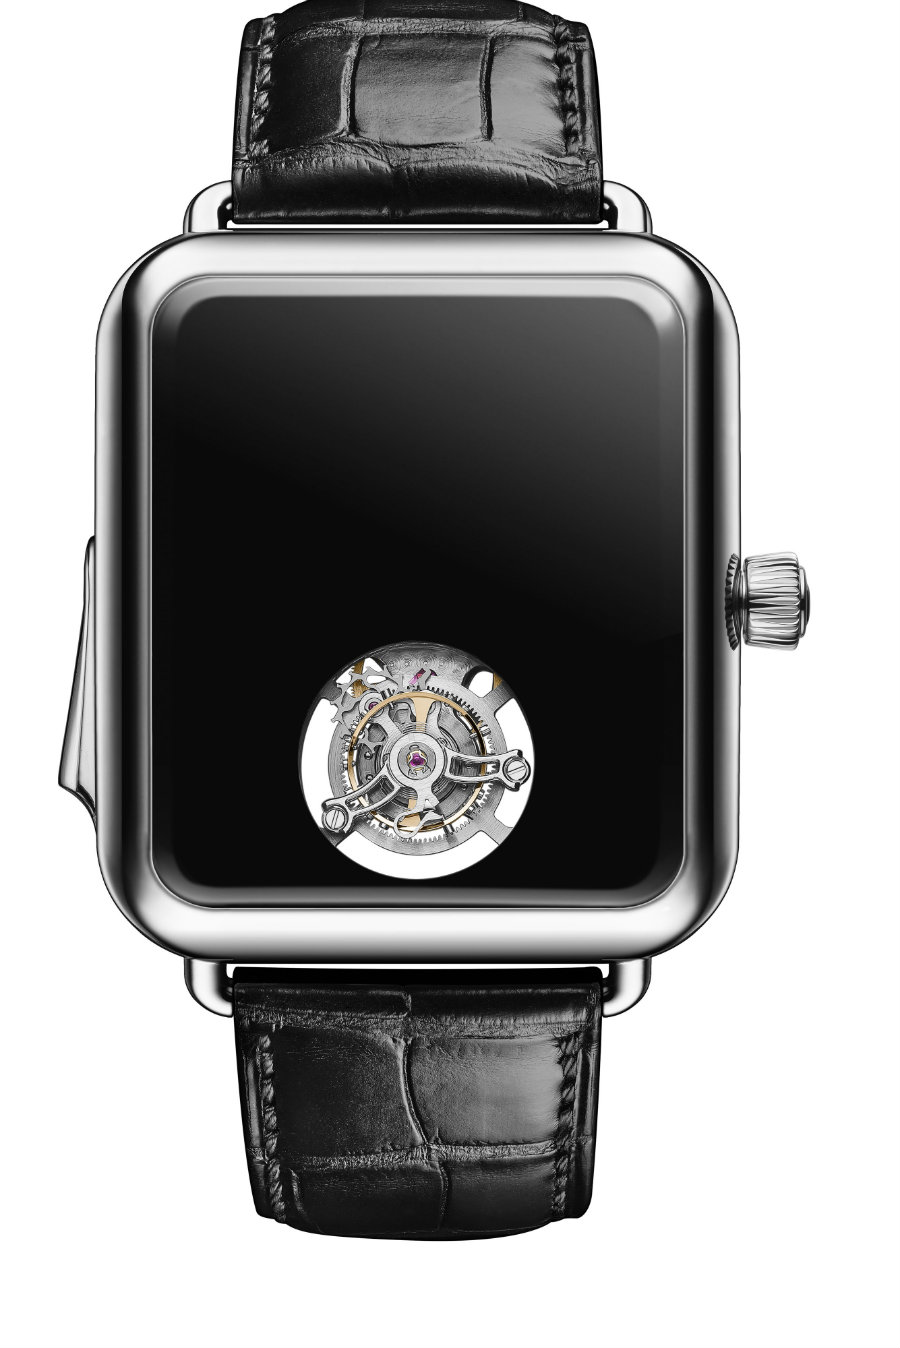 h. moser This H. Moser & Cie Watch is very lookalike an Apple Watch Watch2 1